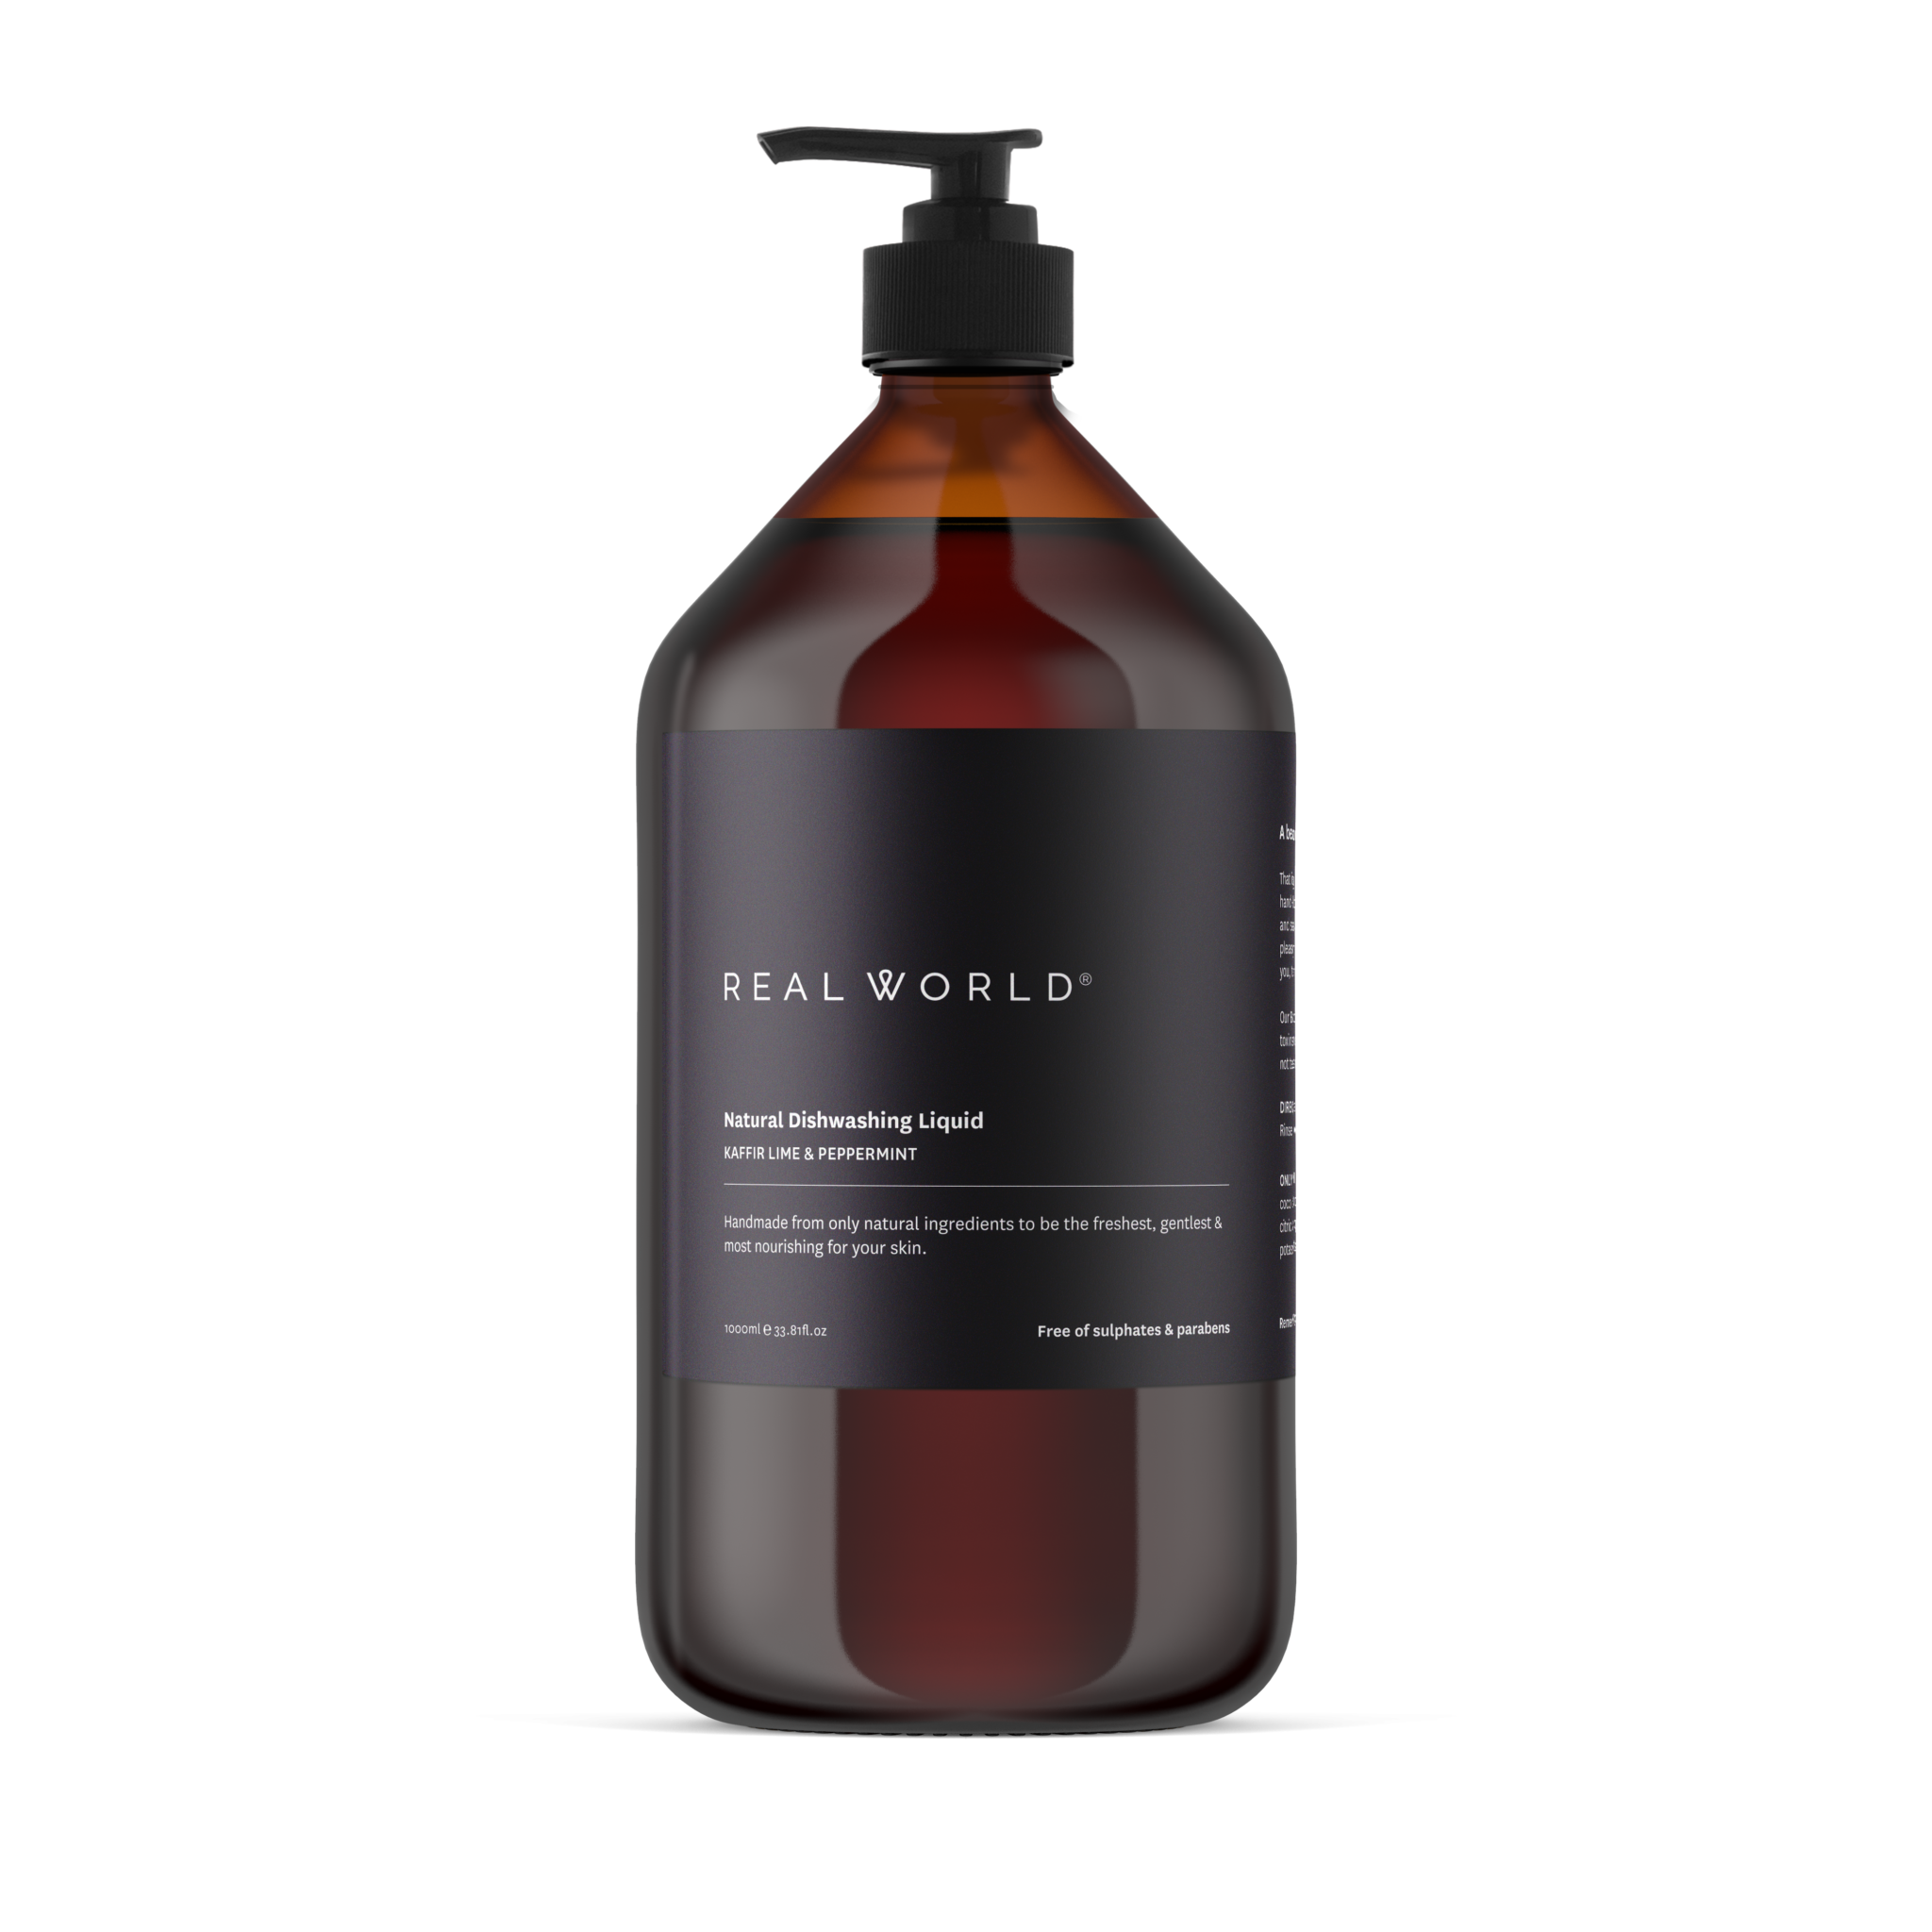 homeware-realworld-dishwashing-liquid